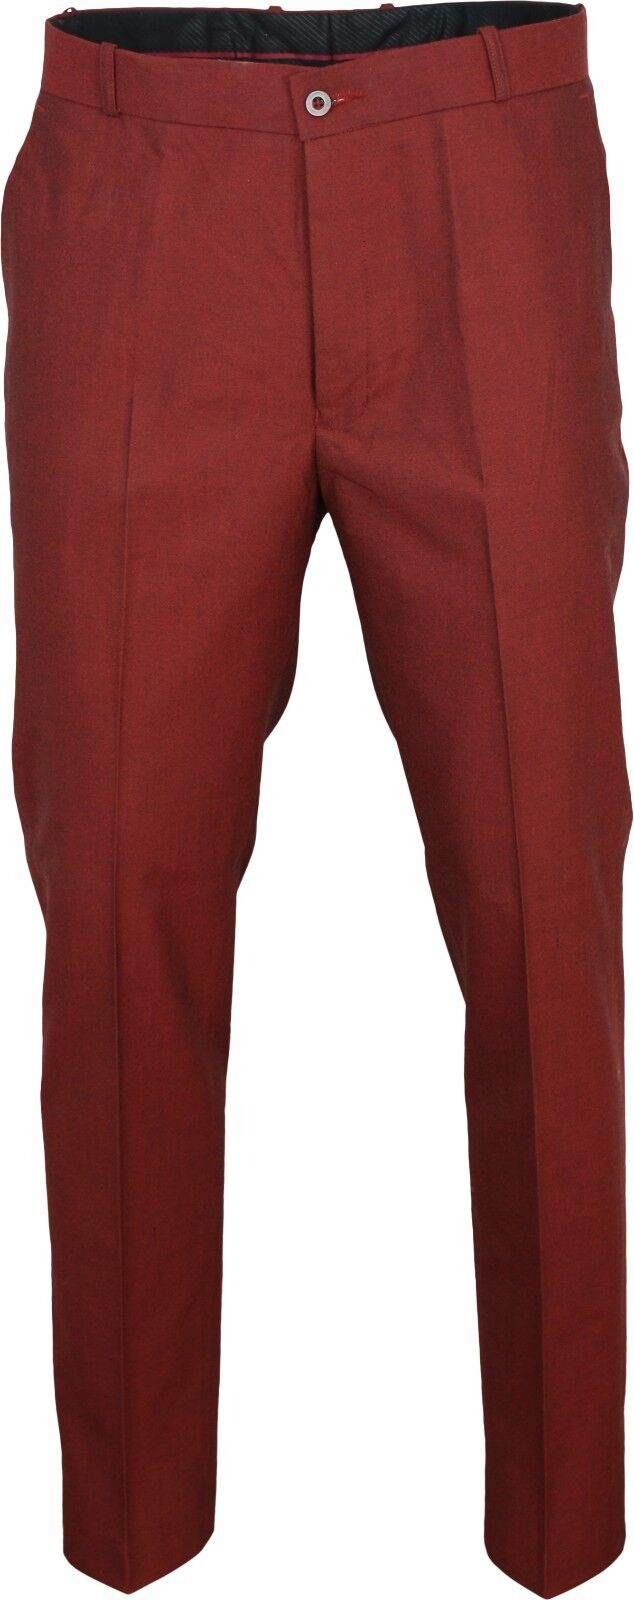 Relco Mens Stay Press Burgundy Tonic Trousers Two Tone Sta Prest Retro Mod Skin